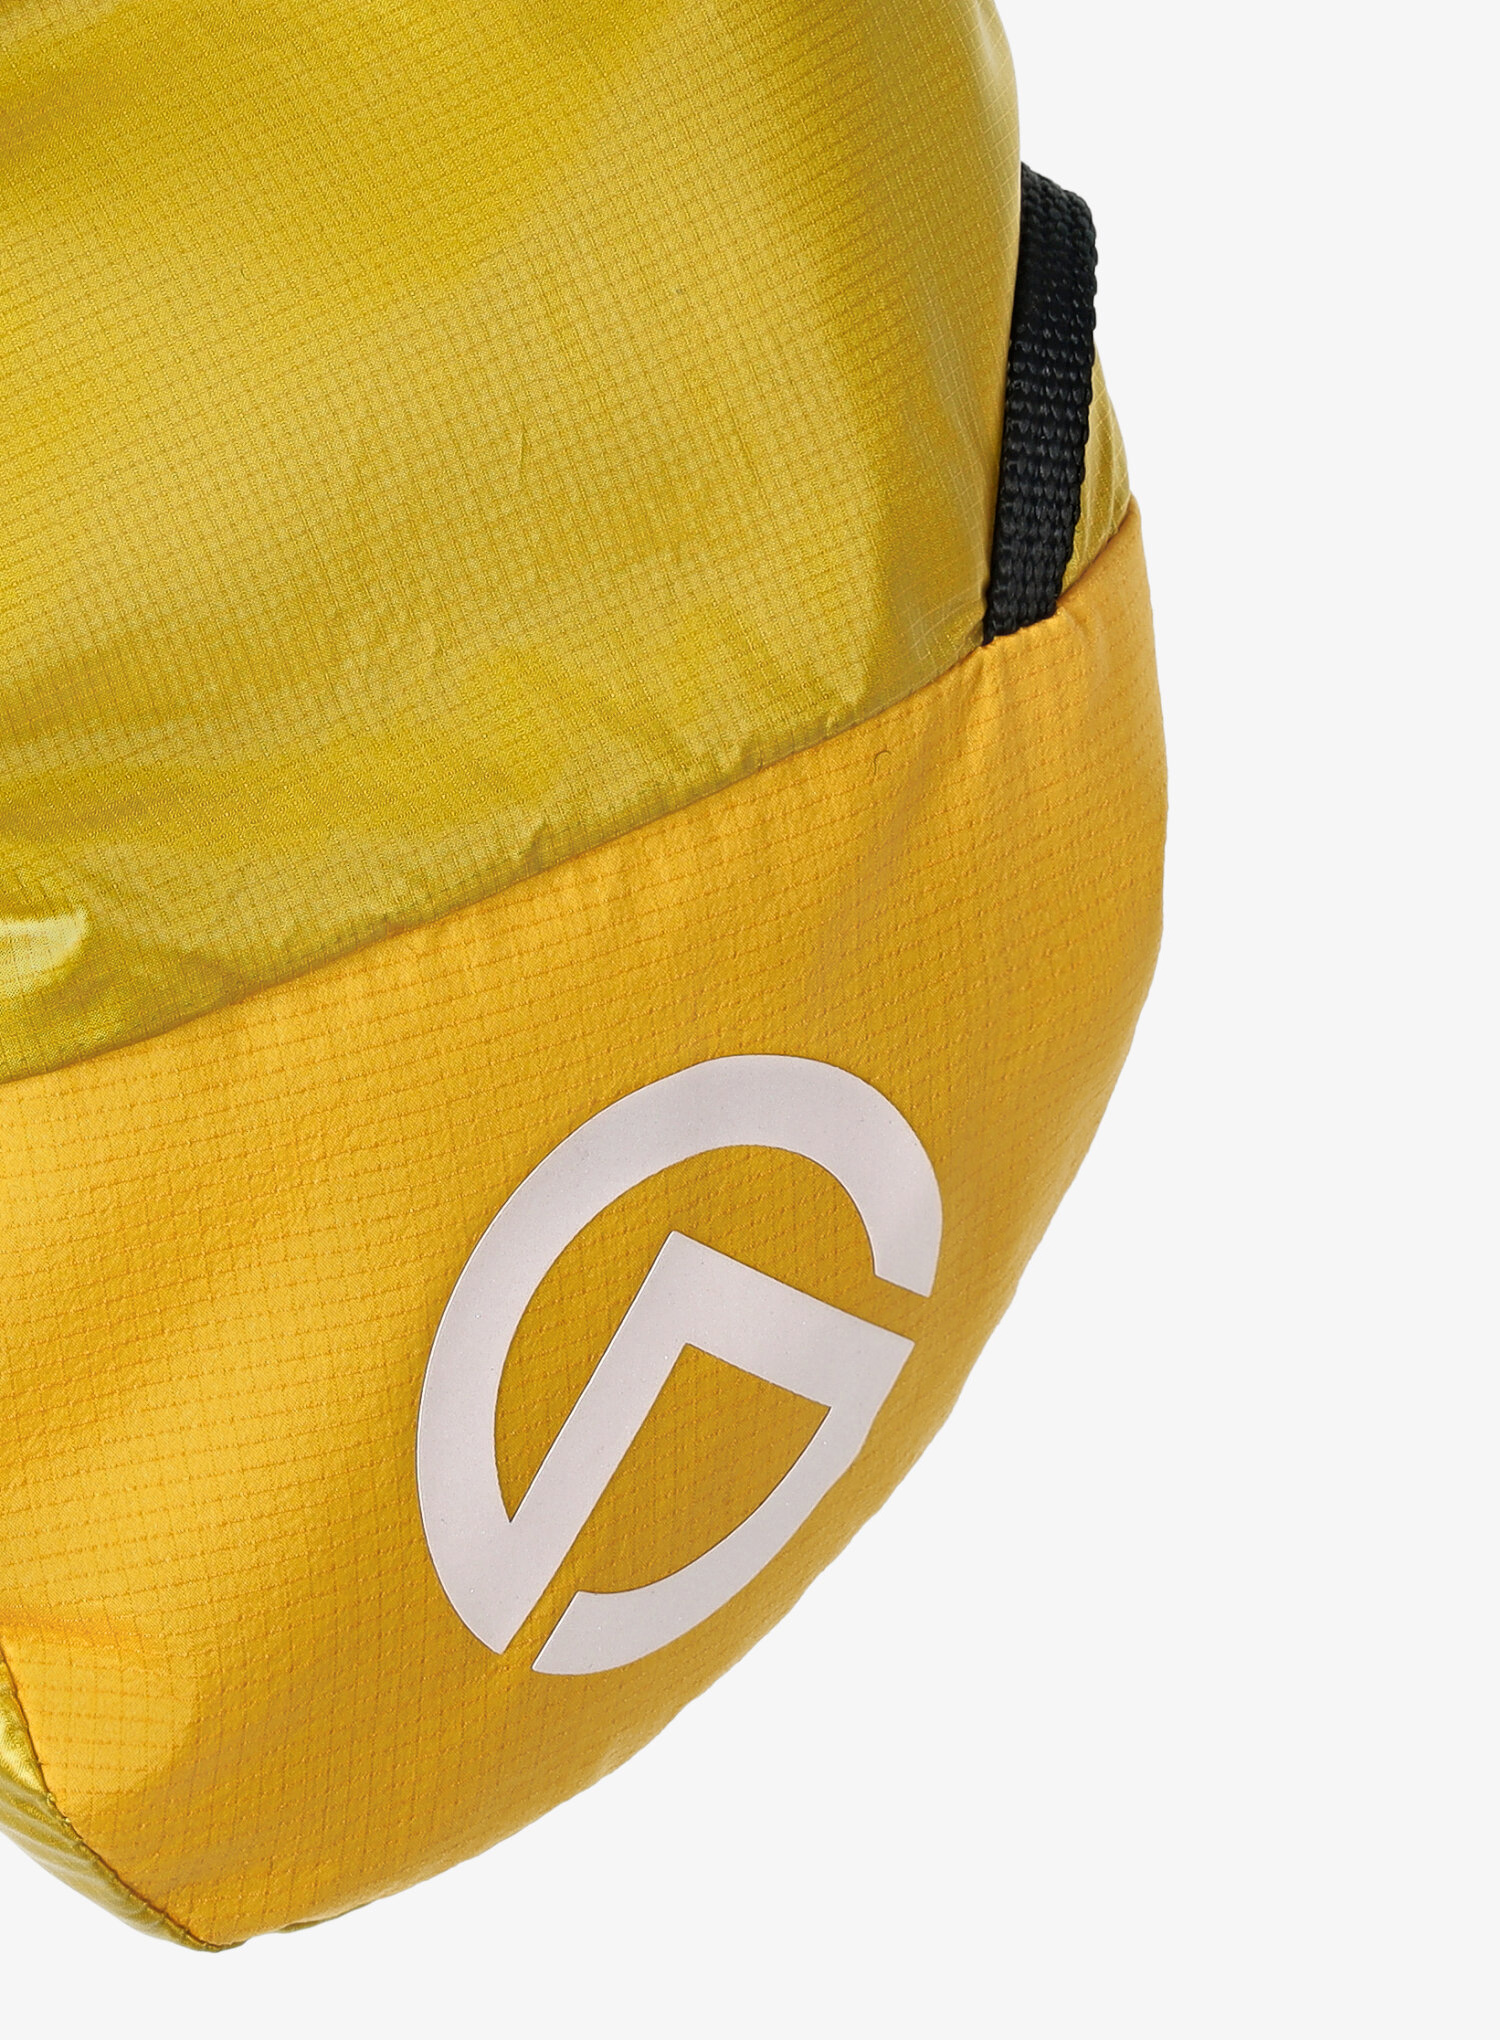 Łapawice The North Face AMK L4 Insulated Down Mitt - canarry/gold - zdjęcie nr. 6